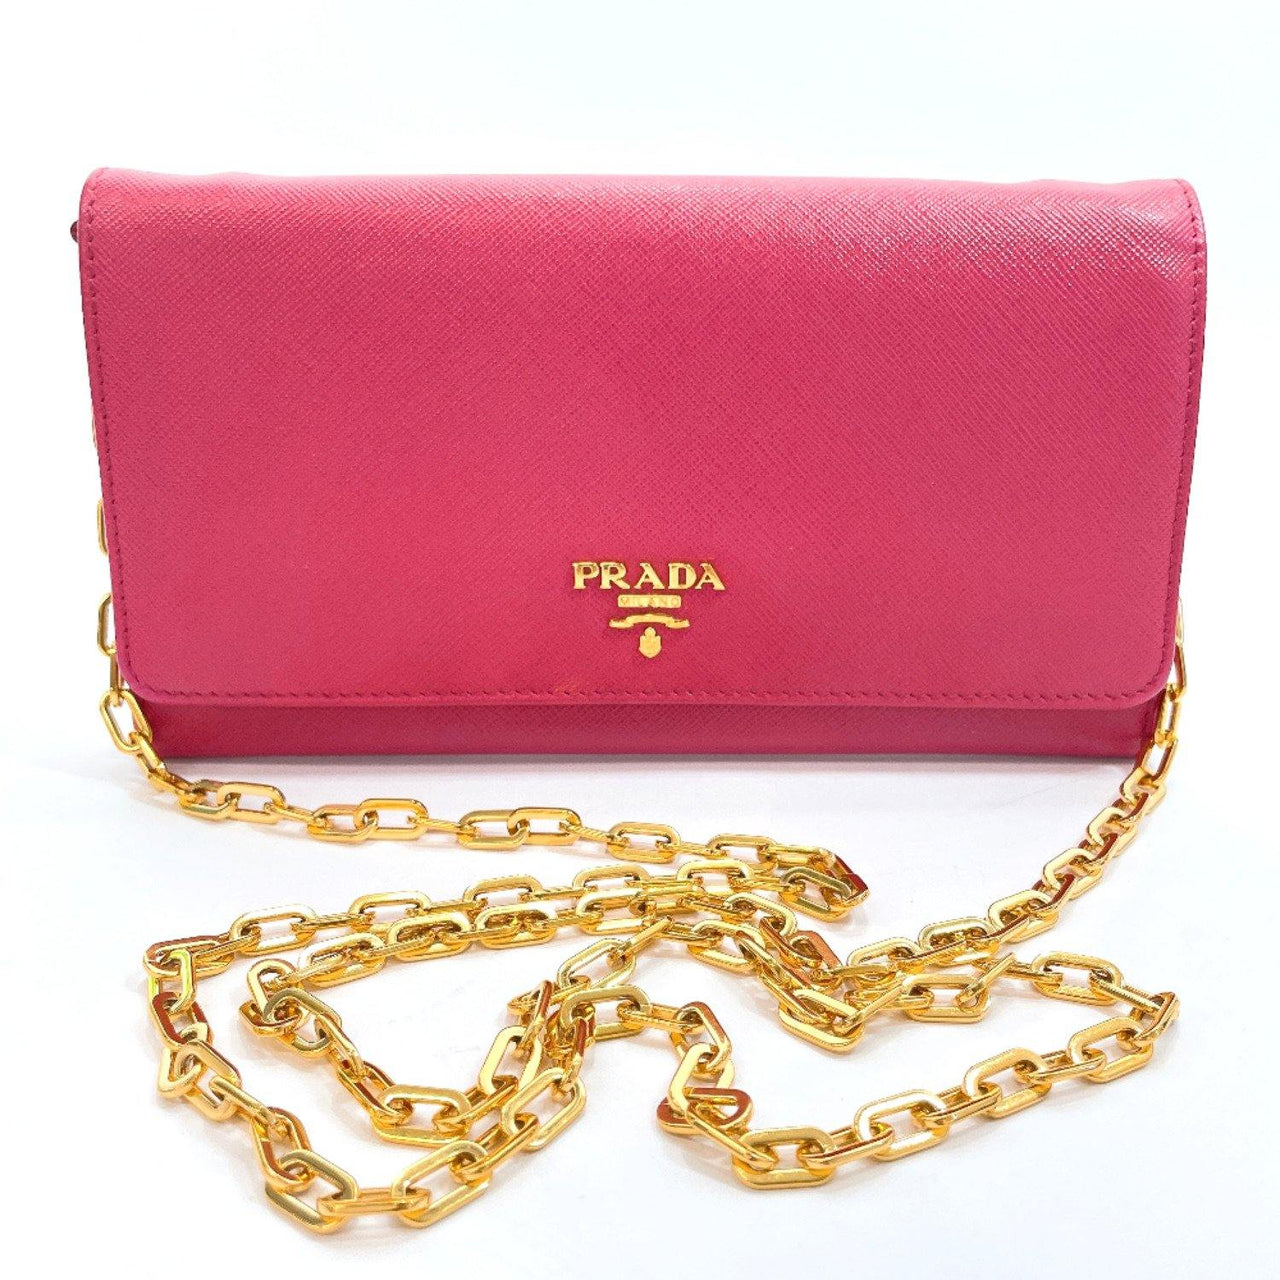 PRADA purse 1MT290 Chain wallet Safiano leather pink gold Women Used